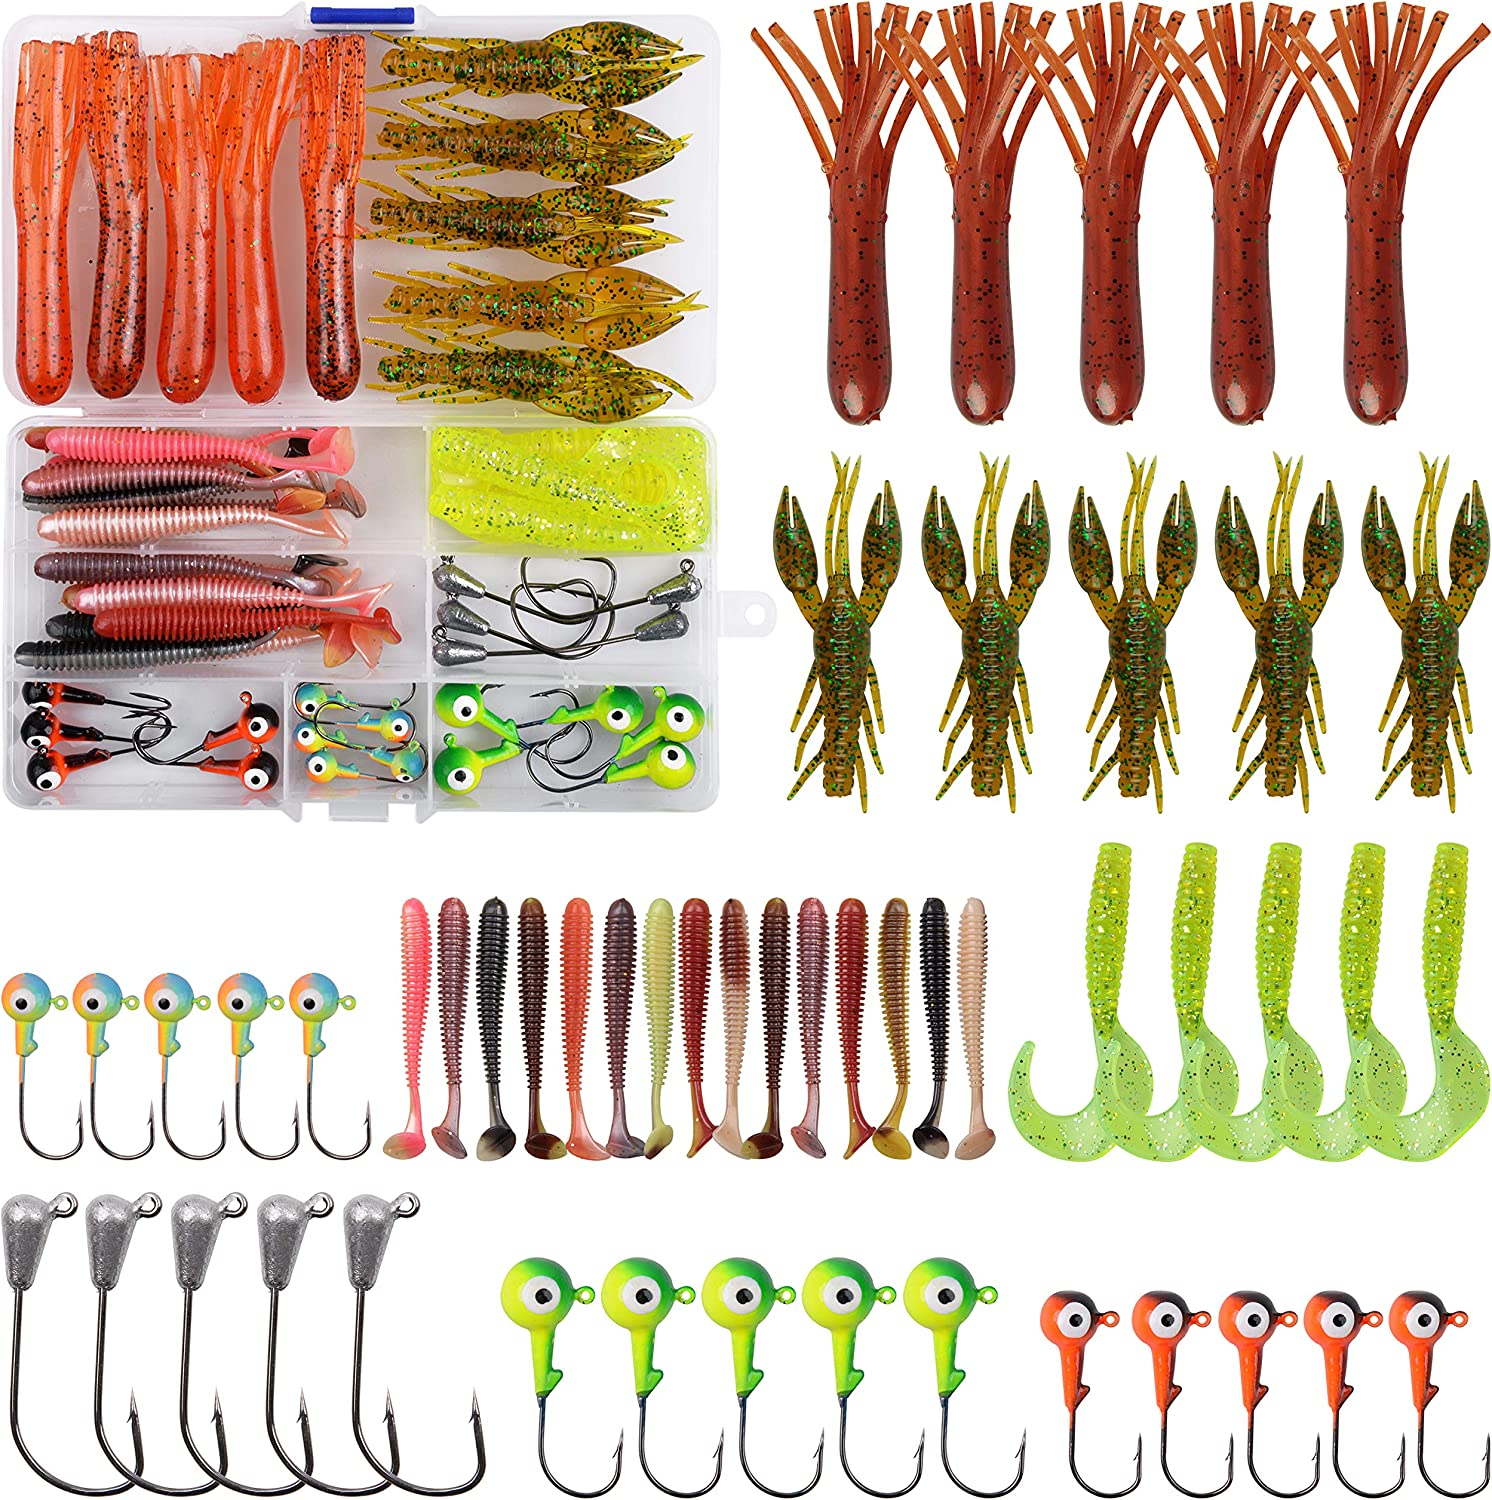 Soft Fishing Lures for Bass, Paddle Tail Swimbaits, Tube Baits, Crawfish, Curved Tail Grubs with Jig Heads for Freshwater Saltwater